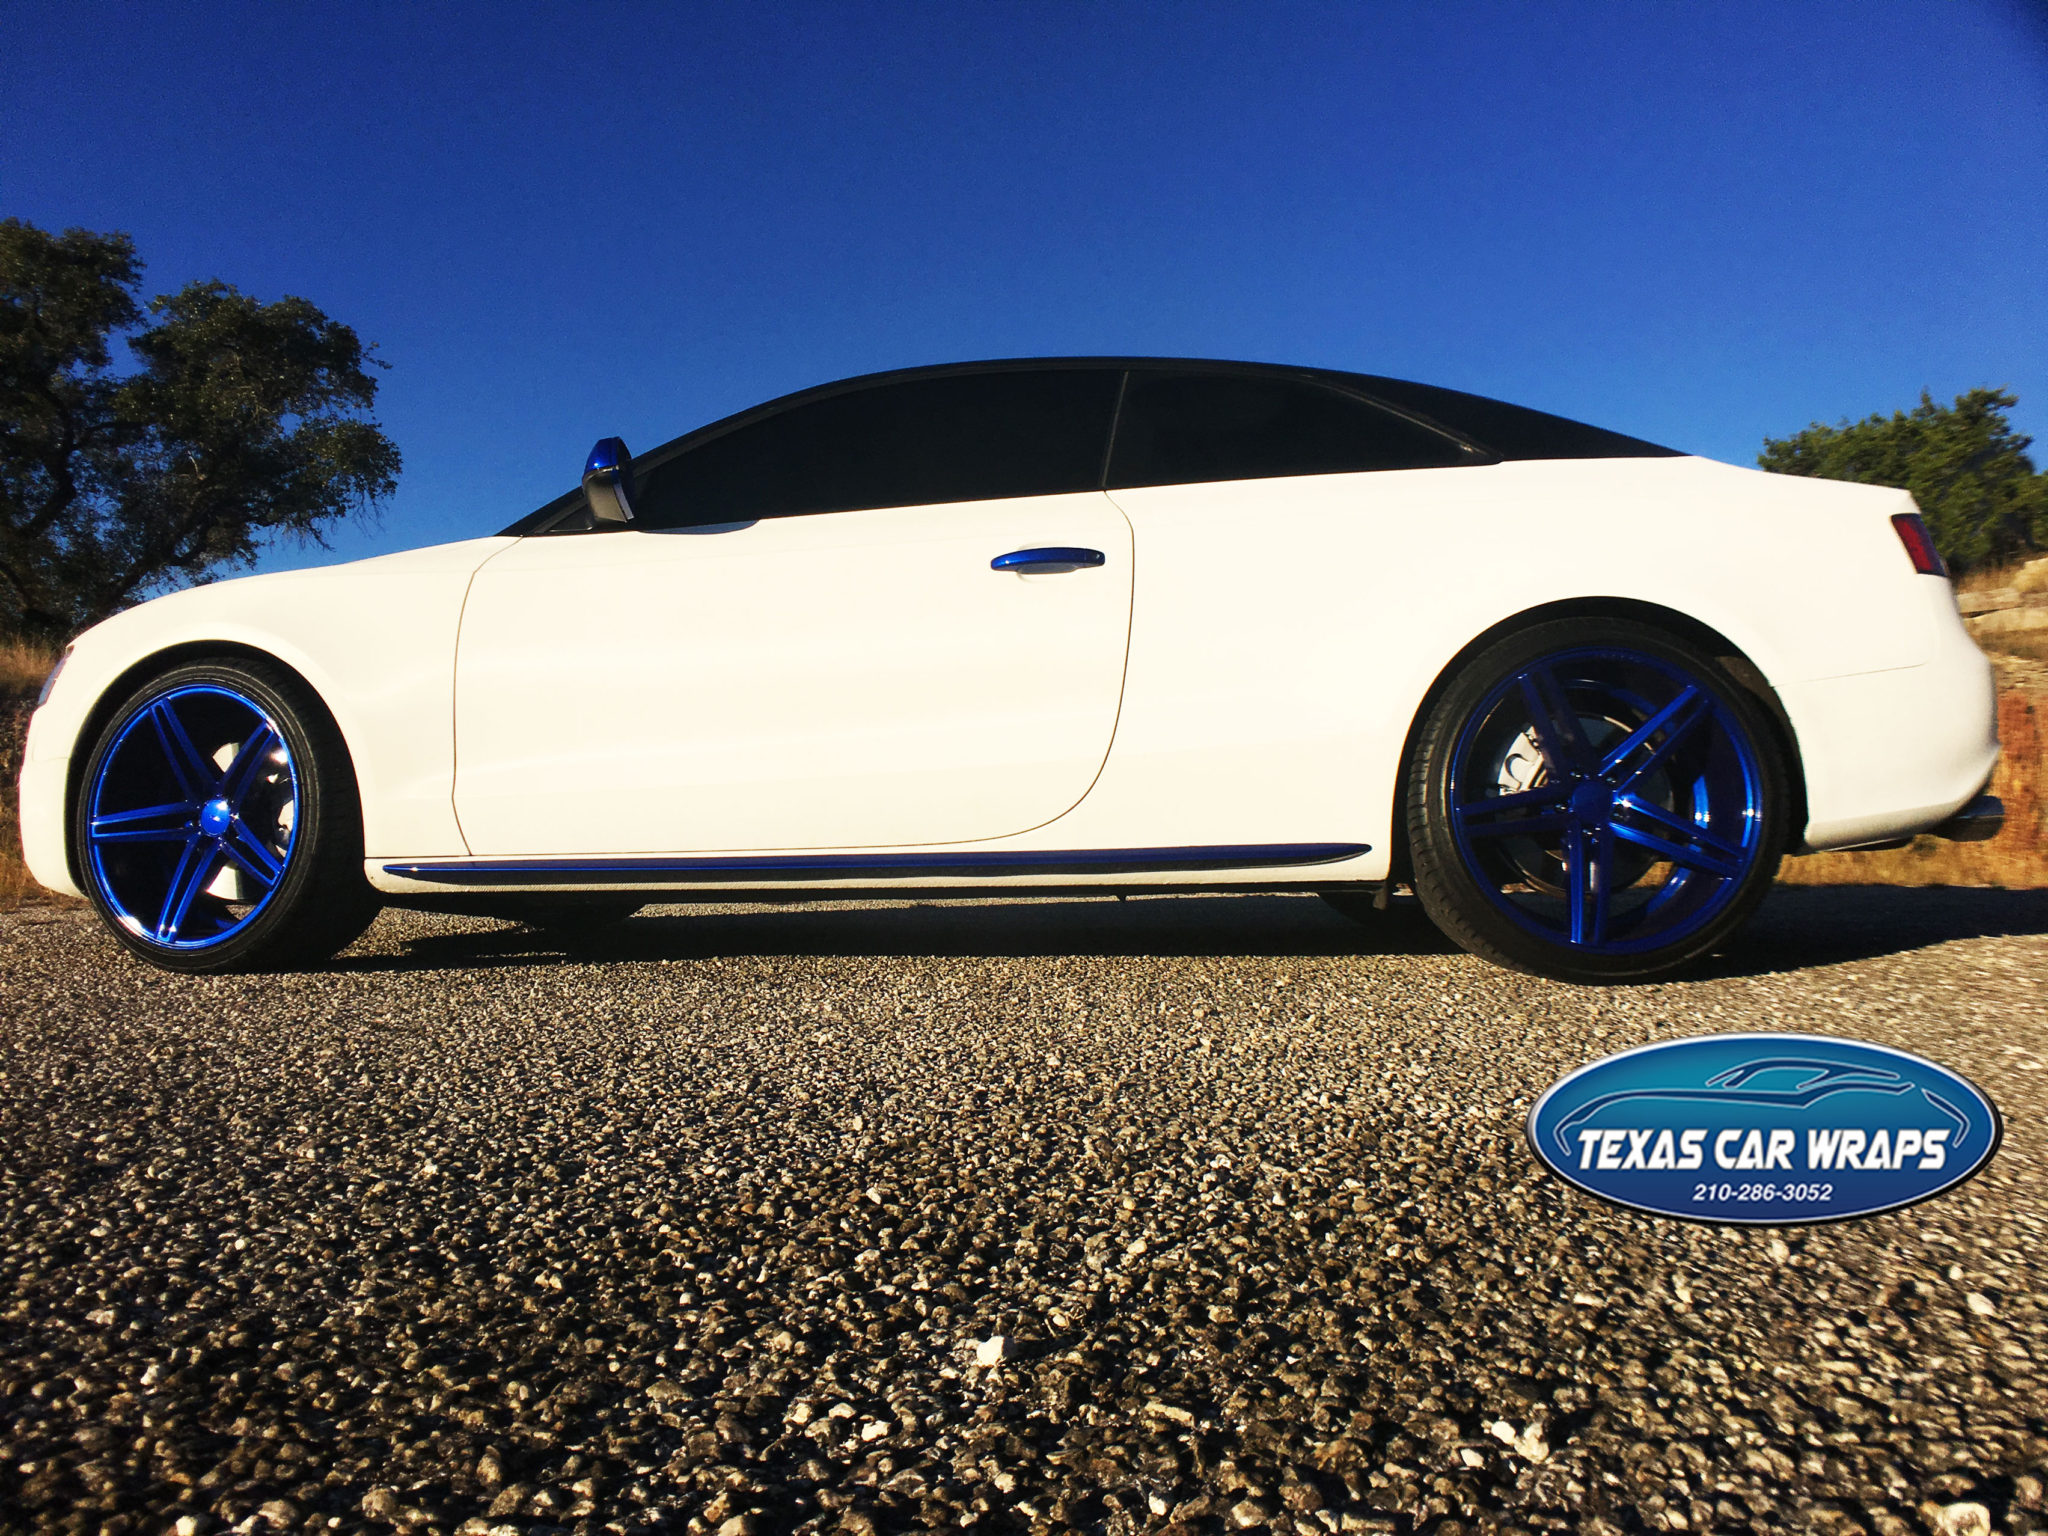 Car Wrap Austin TX | Austin Texas Car Wraps | Texas Car Wraps | Vehicle Wrap Austin | Vinyl Graphics Austin | Carbon Fiber Wrap Austin | Custom Graphics Austin | Custom Car Austin | Automotive Customization Austin